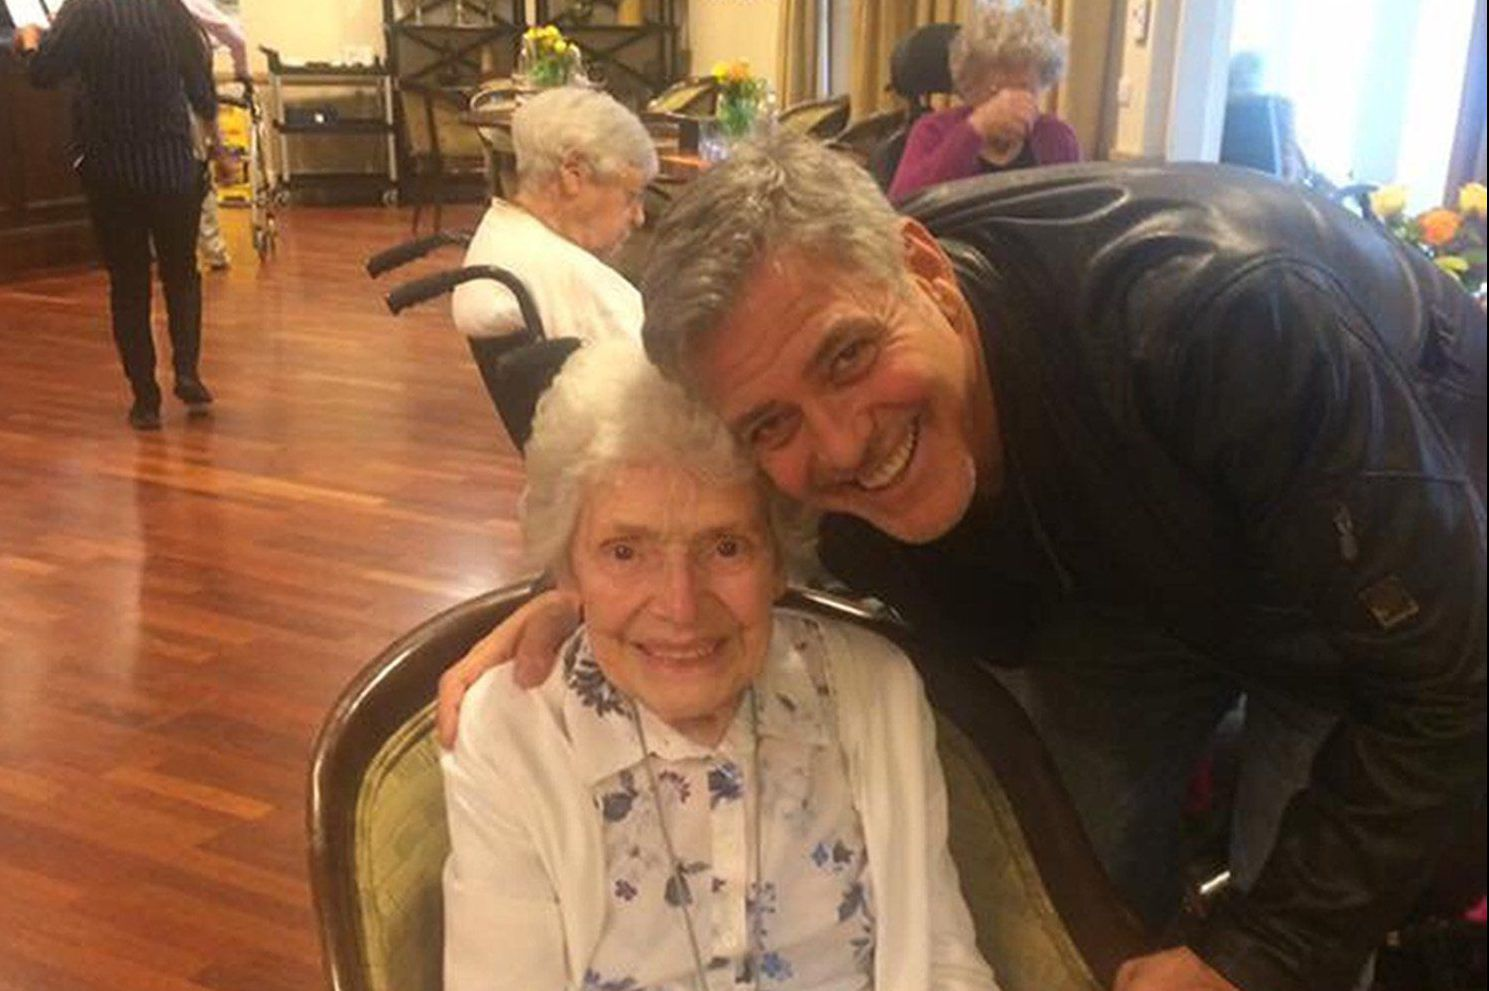 George Clooney with 87-year-old woman